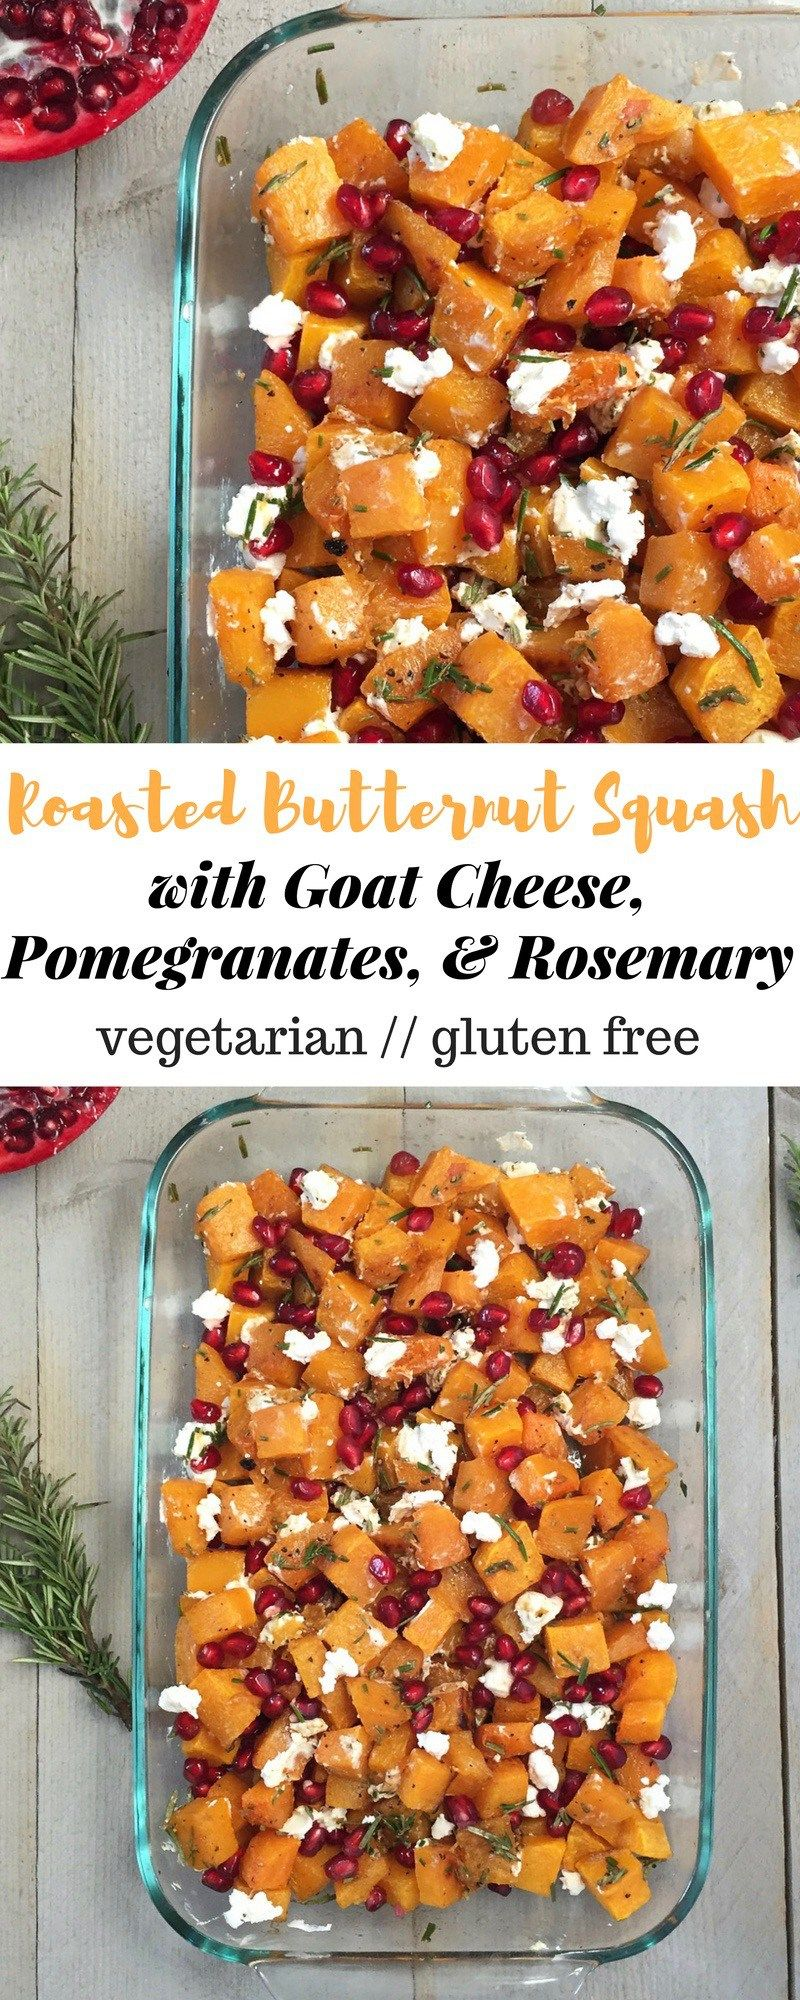 Roasted butternut squash combined with goat cheese, pomegranates, and rosemary make this simple gluten free and vegetarian dish a star at your holiday gatherings - Eat the Gains